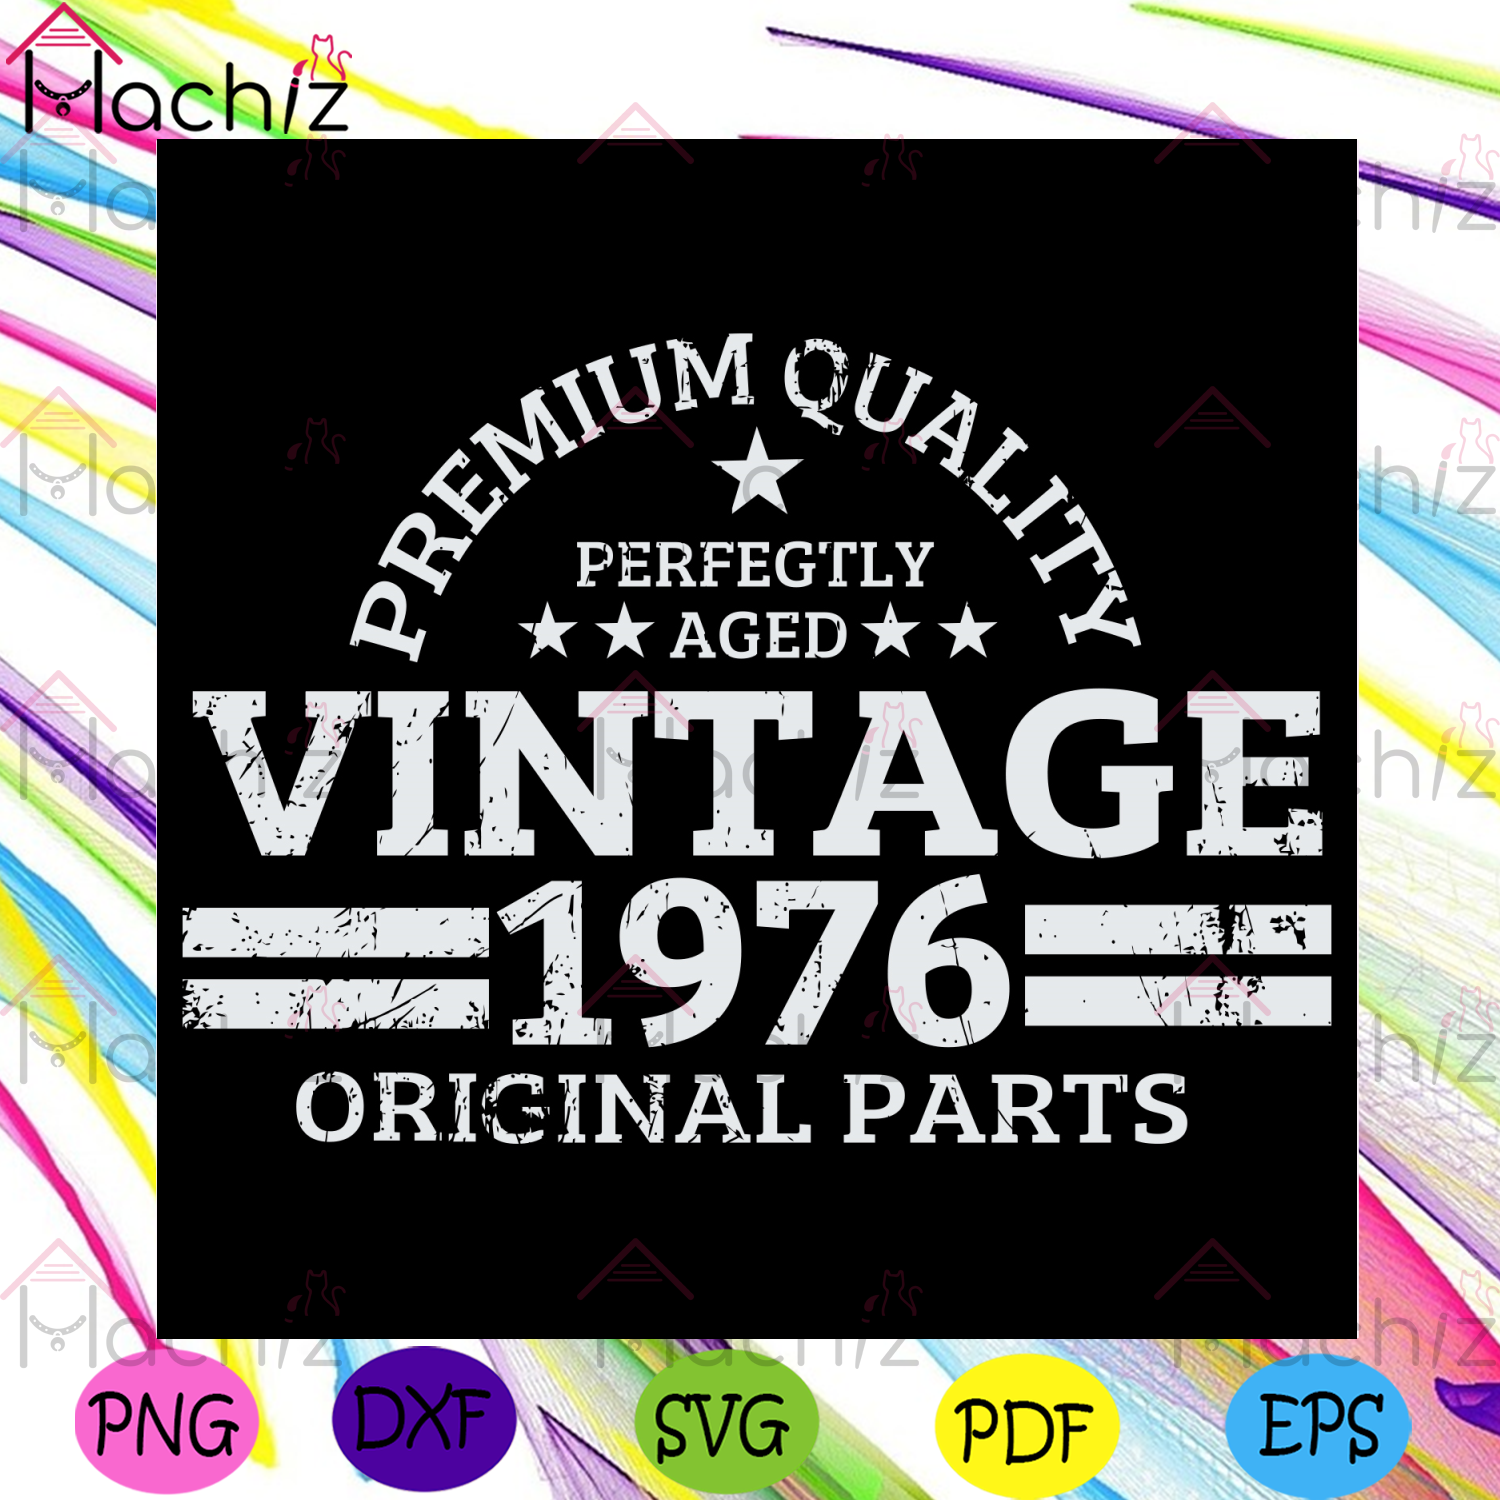 Premium Quality Perfectly Aged Vintage 1976 Original Parts Svg, Birthday Svg, Born In 1976 Svg, 1976 Birthday Svg, 1967 Man Svg, 1967 Woman Svg, Birthday Gifts Svg, Birthday Party Svg, Birthday Present Svg, Vintage Svg